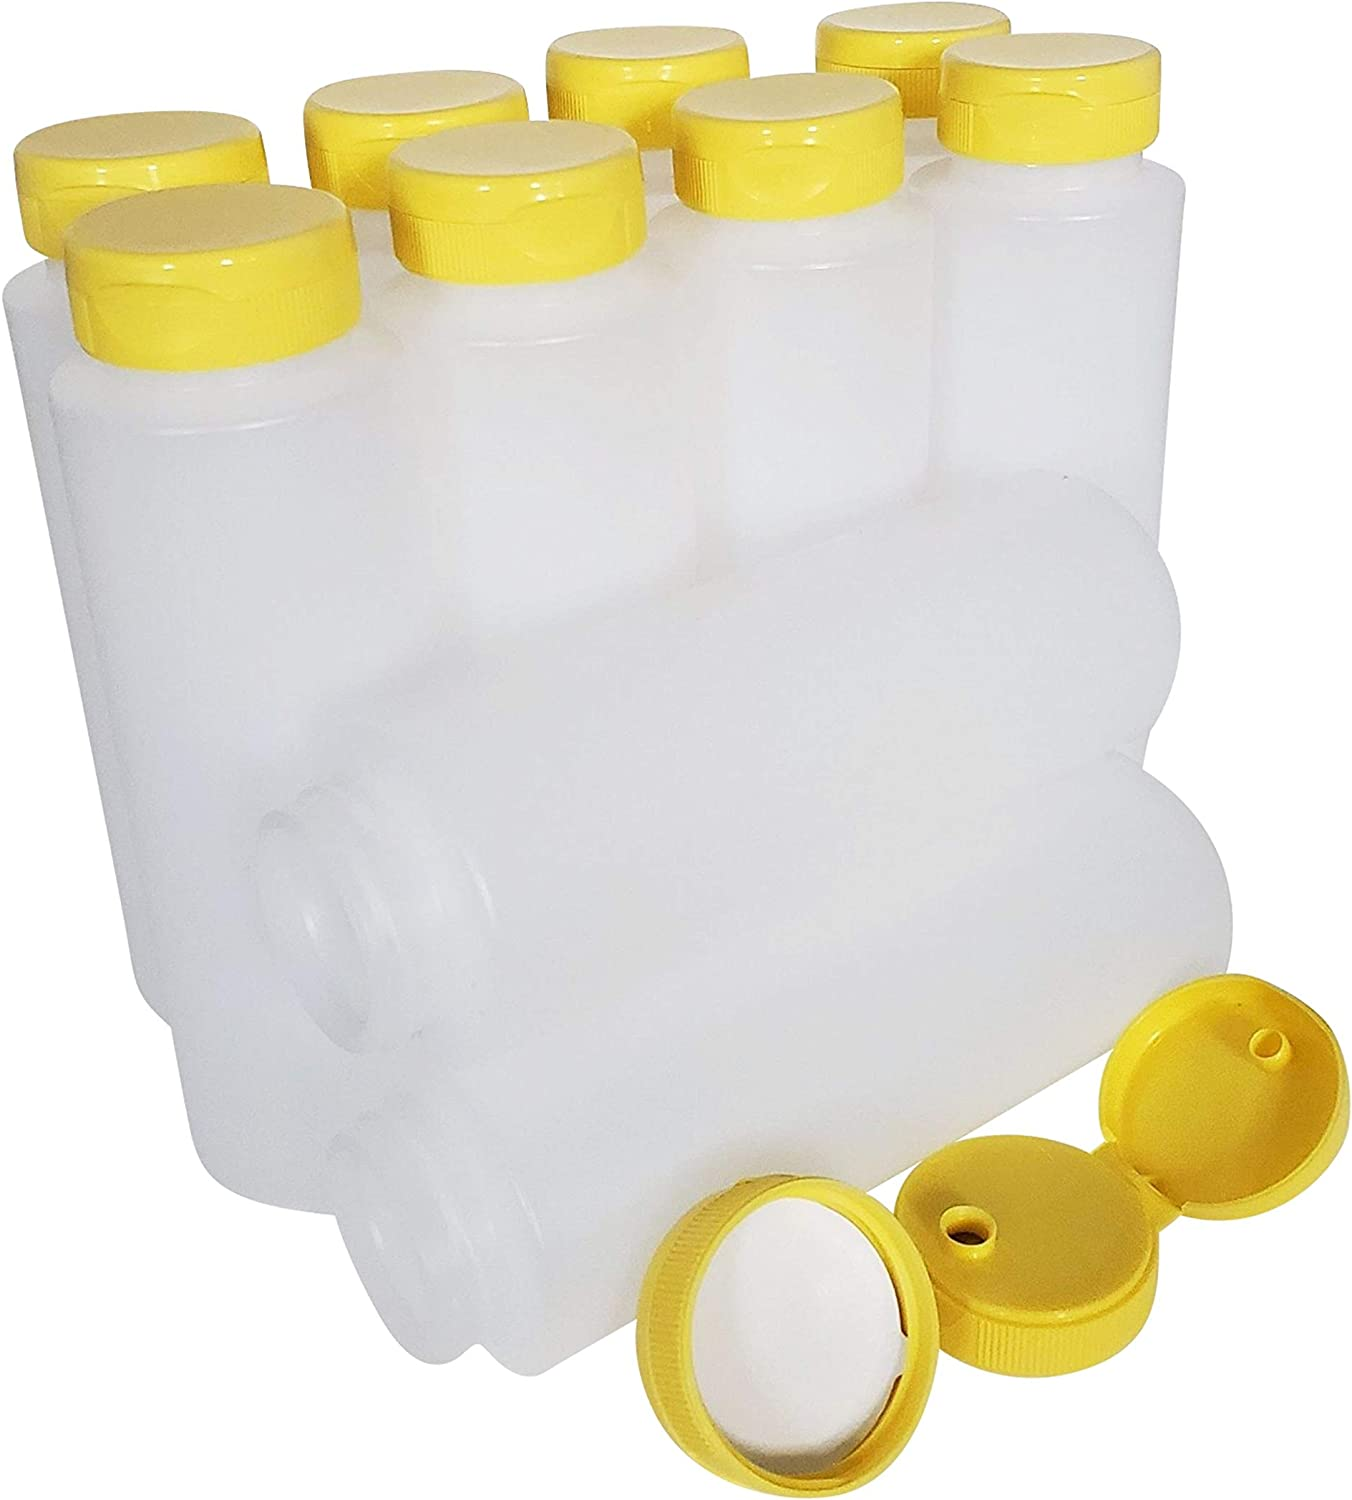 Directly managed store kelkaa 8oz HDPE Plastic Squeeze Save money Opening Bottles with Mouth Wide